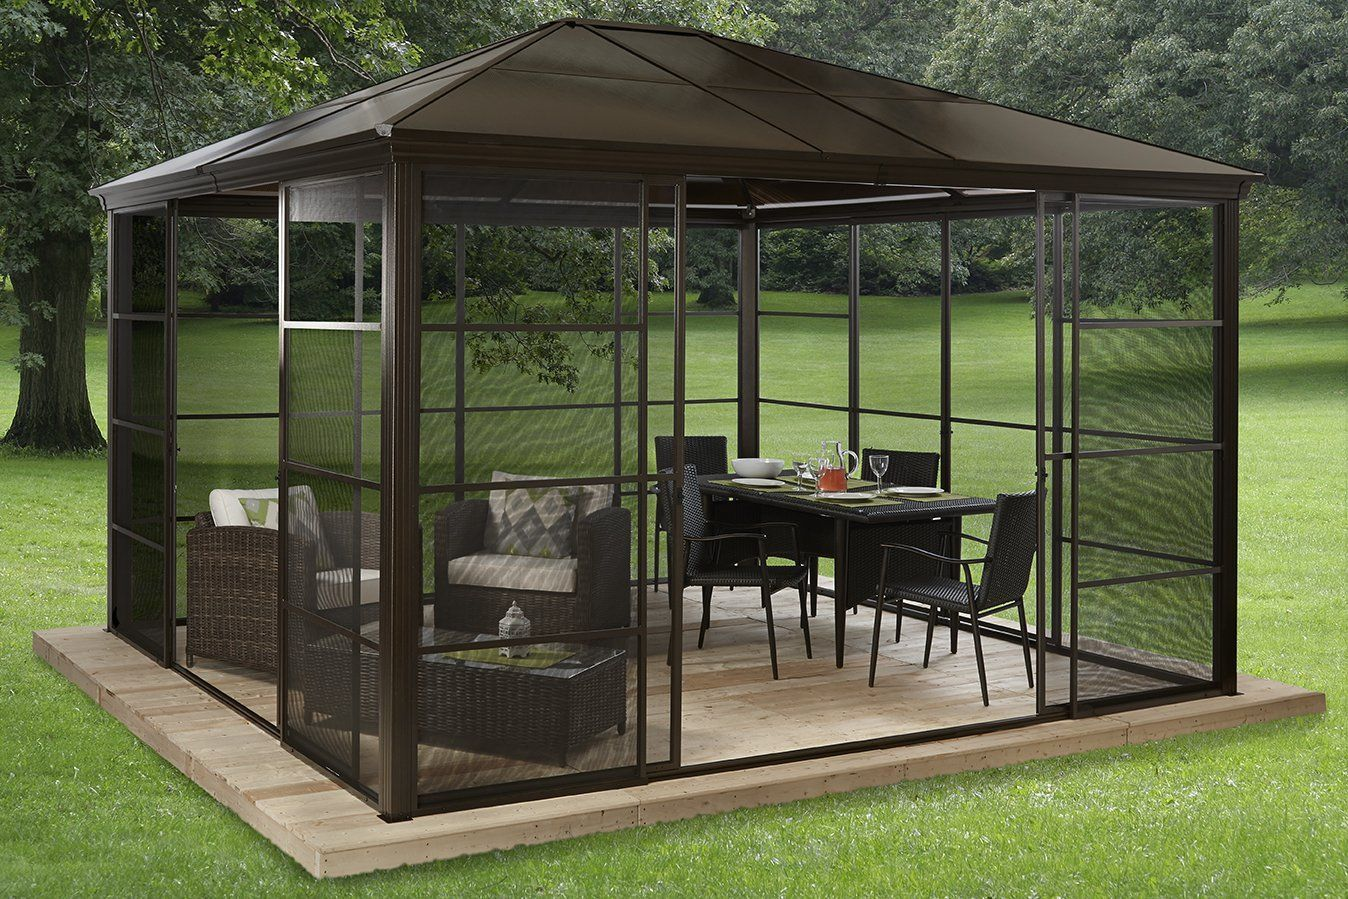 Amazon.com : Gazebo Castel #39   Screen House 12u0027 X 14u0027 Aluminum 4 Sliding  Doors : Patio, Lawn U0026 Garden